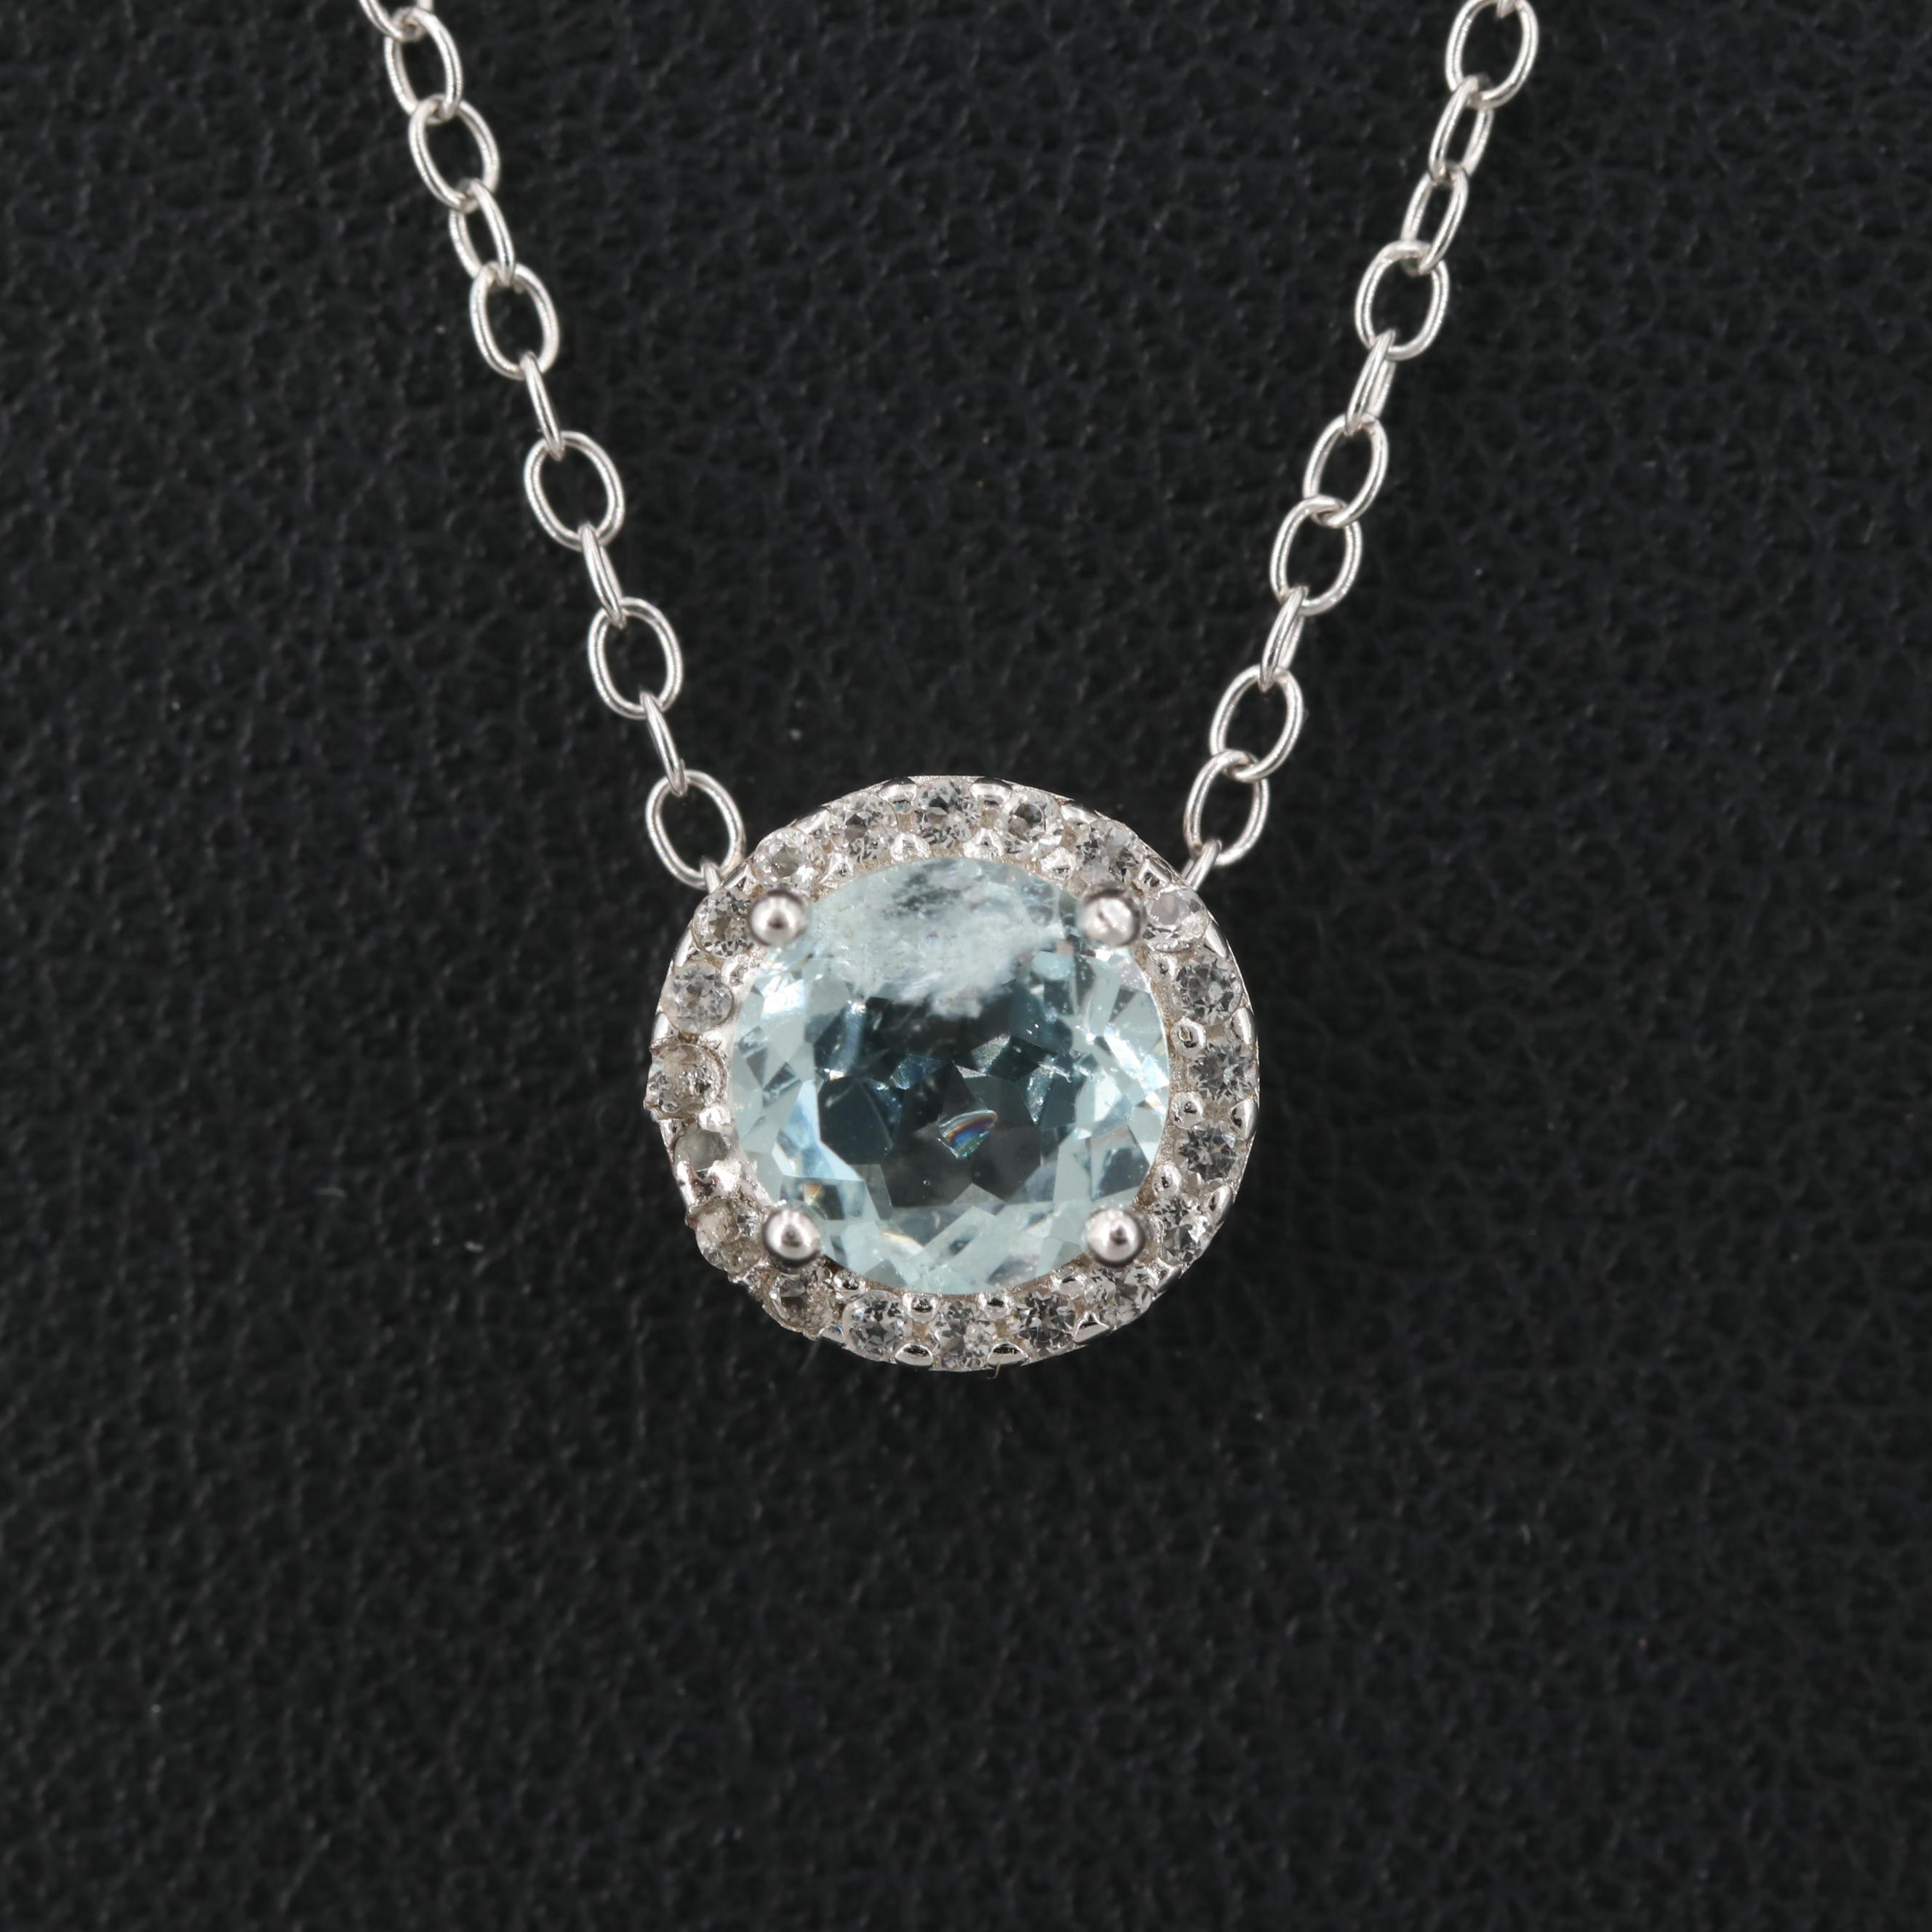 Sterling Silver Aquamarine and White Topaz Necklace